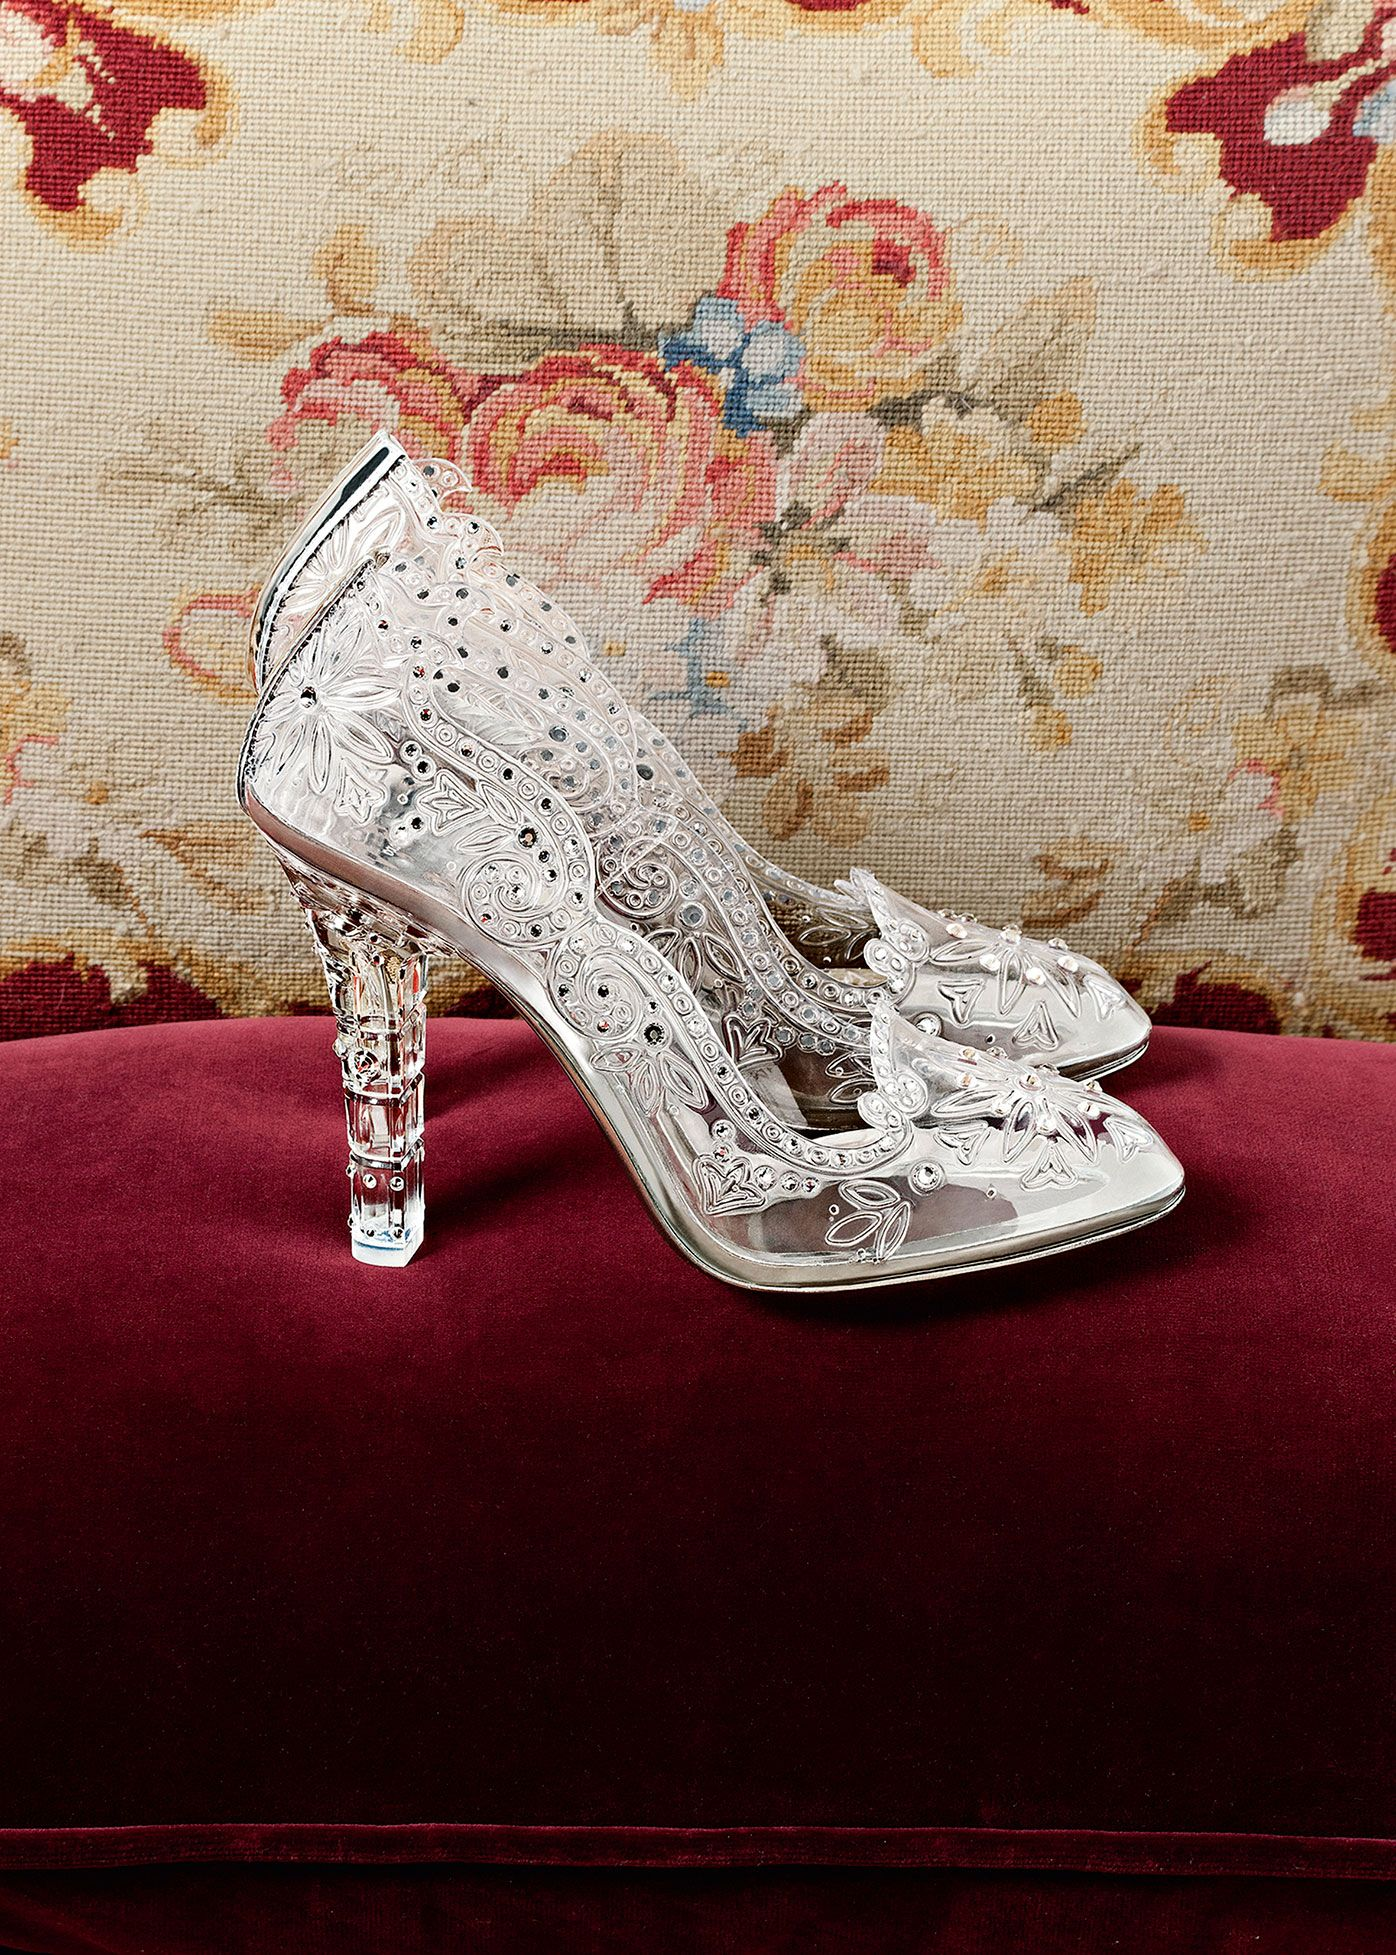 cinderella wedding shoes Wedding Shoes dolce and gabbana winter woman accessories collection 57